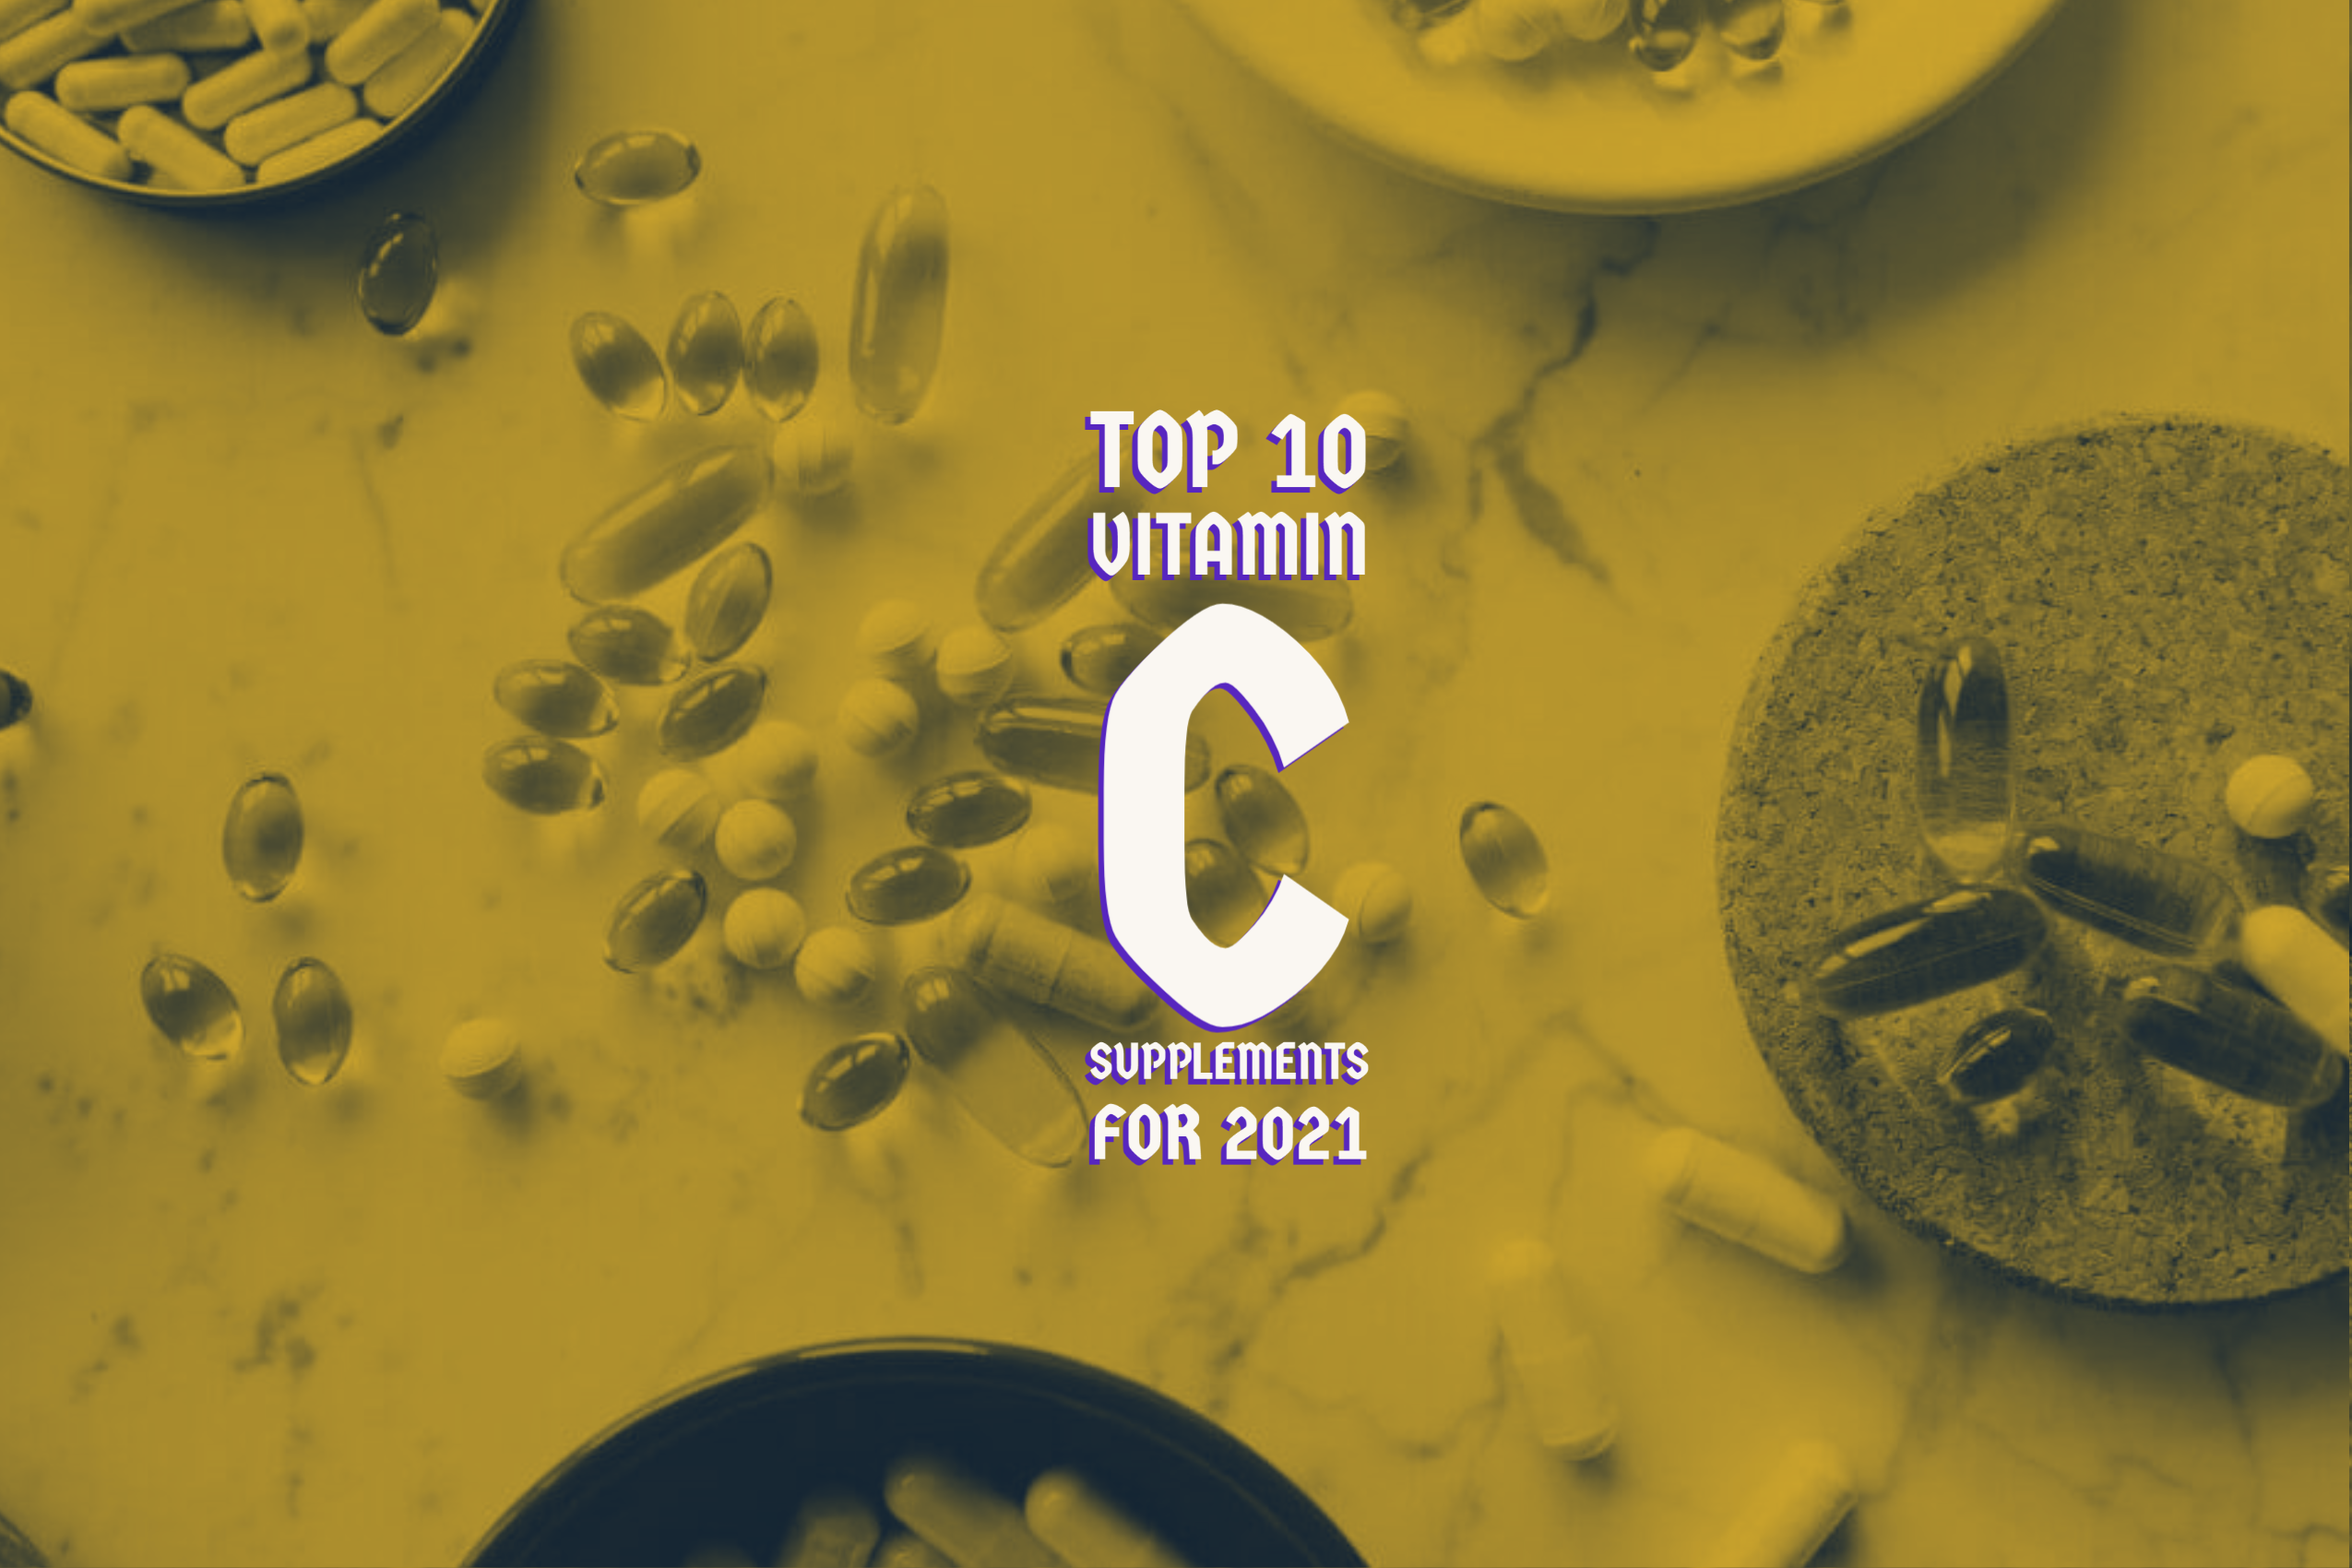 Top 10 Vitamin C Supplements for 2021